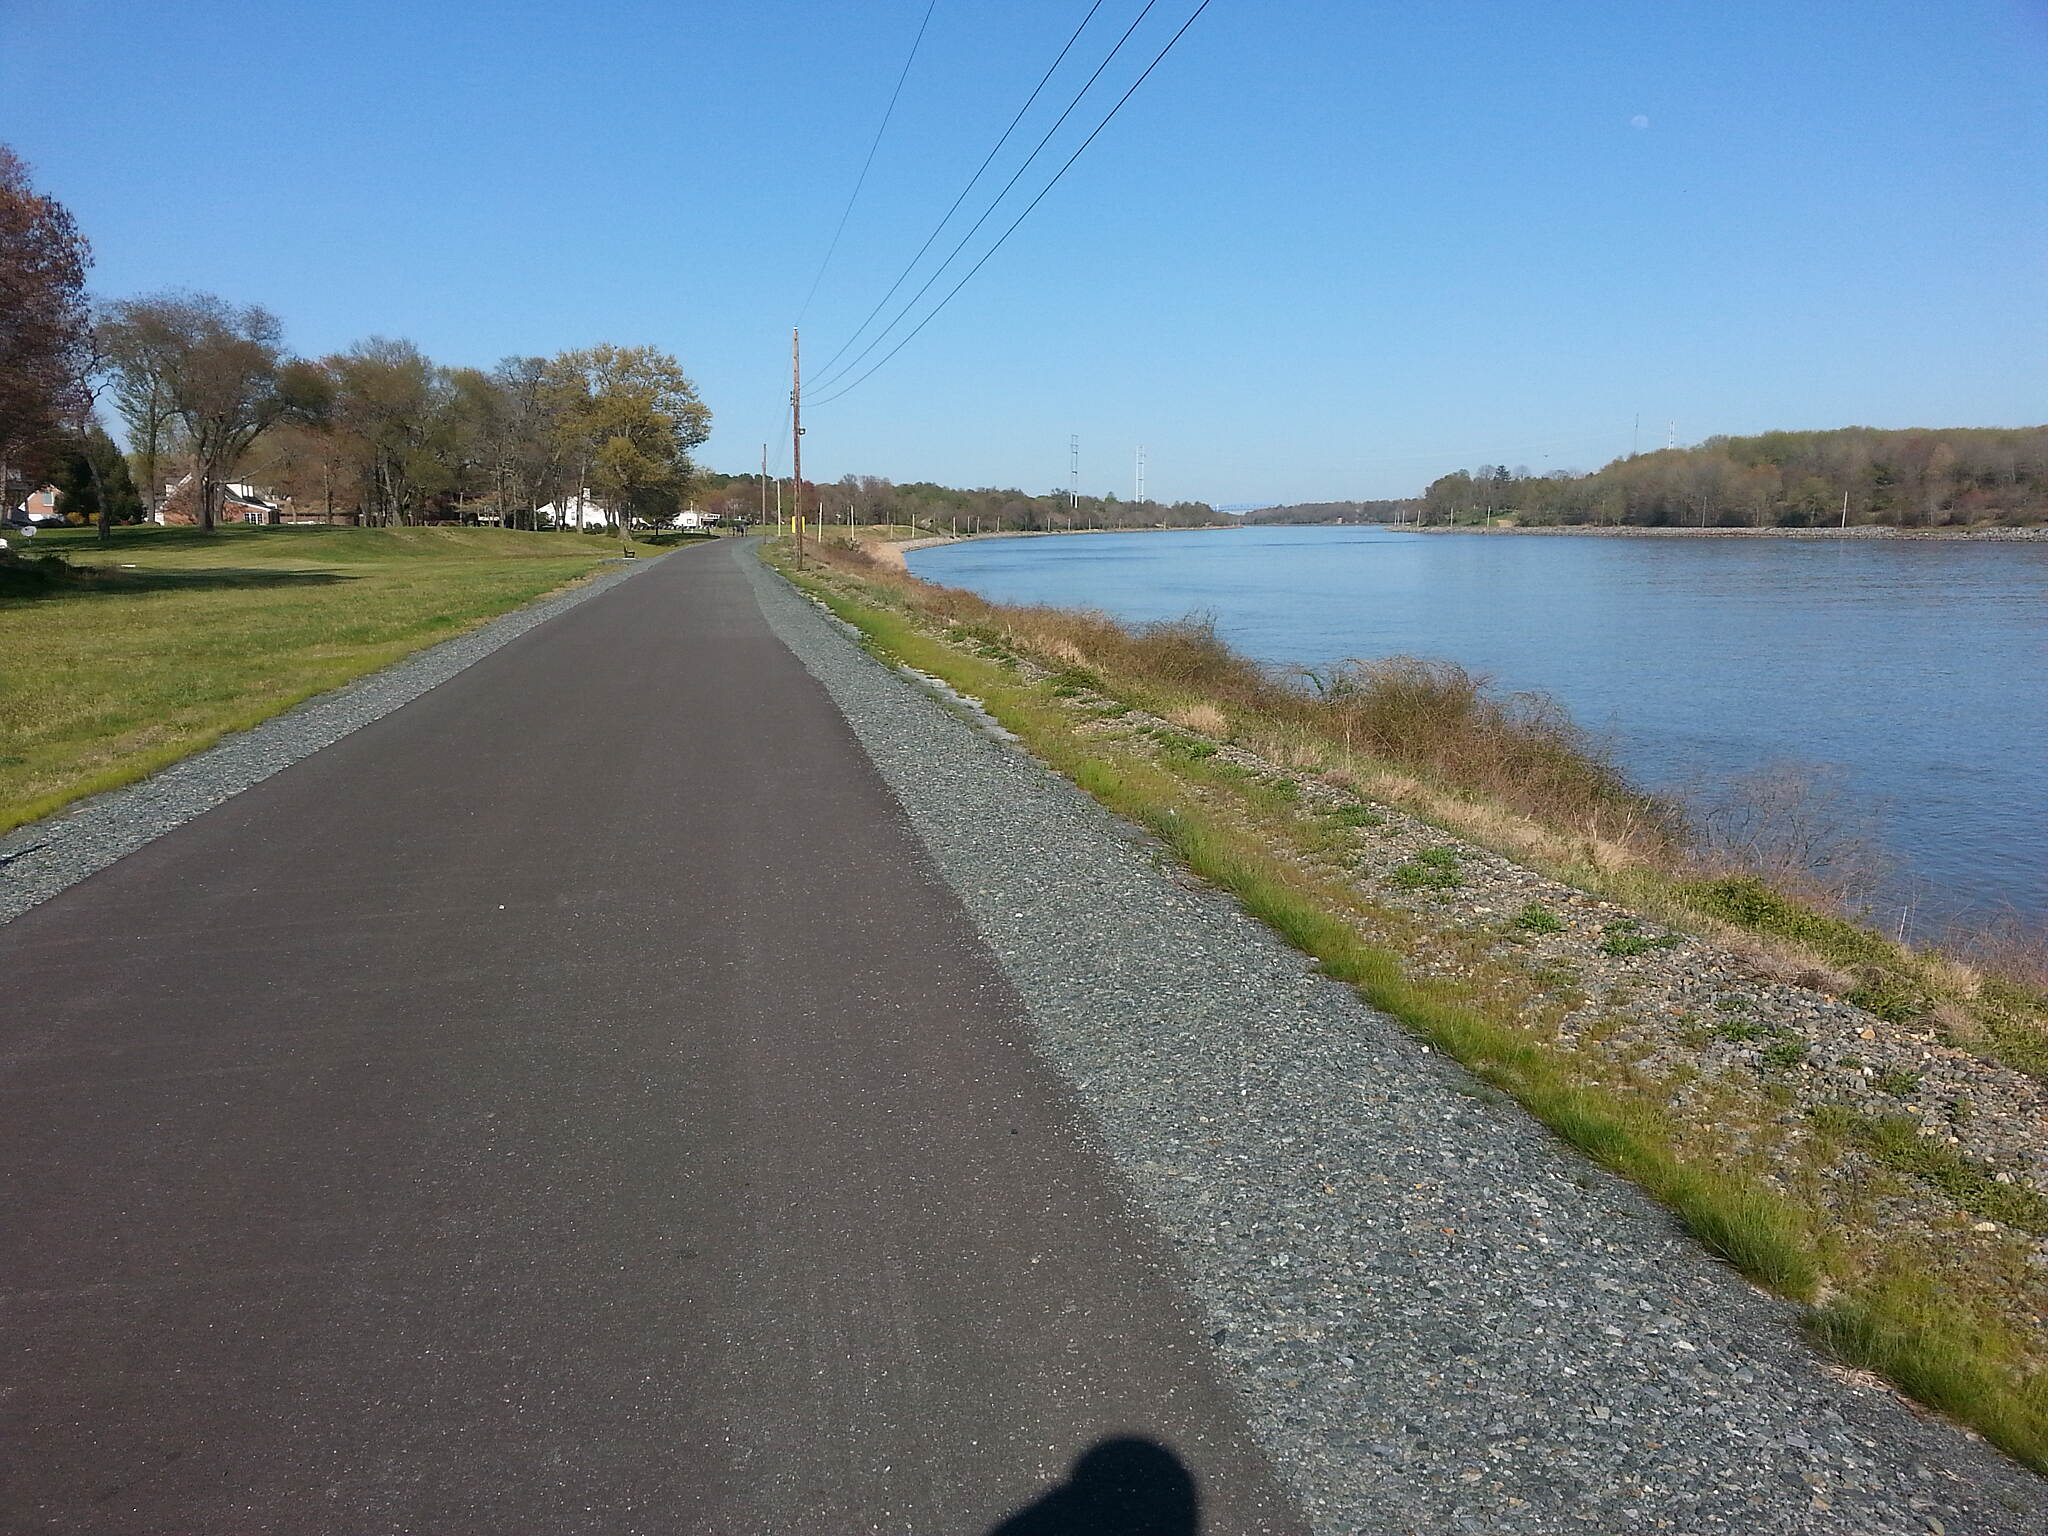 Ben Cardin C&D Canal Recreational Trail Heading toward Delaware The Ben Cardin trail becomes the Michael N. Castle Trail at the Delaware Border. When completed later in 2016 there will be a continuous trail from Chesapeake City, MD to the ferry landing at Delaware City, DE.